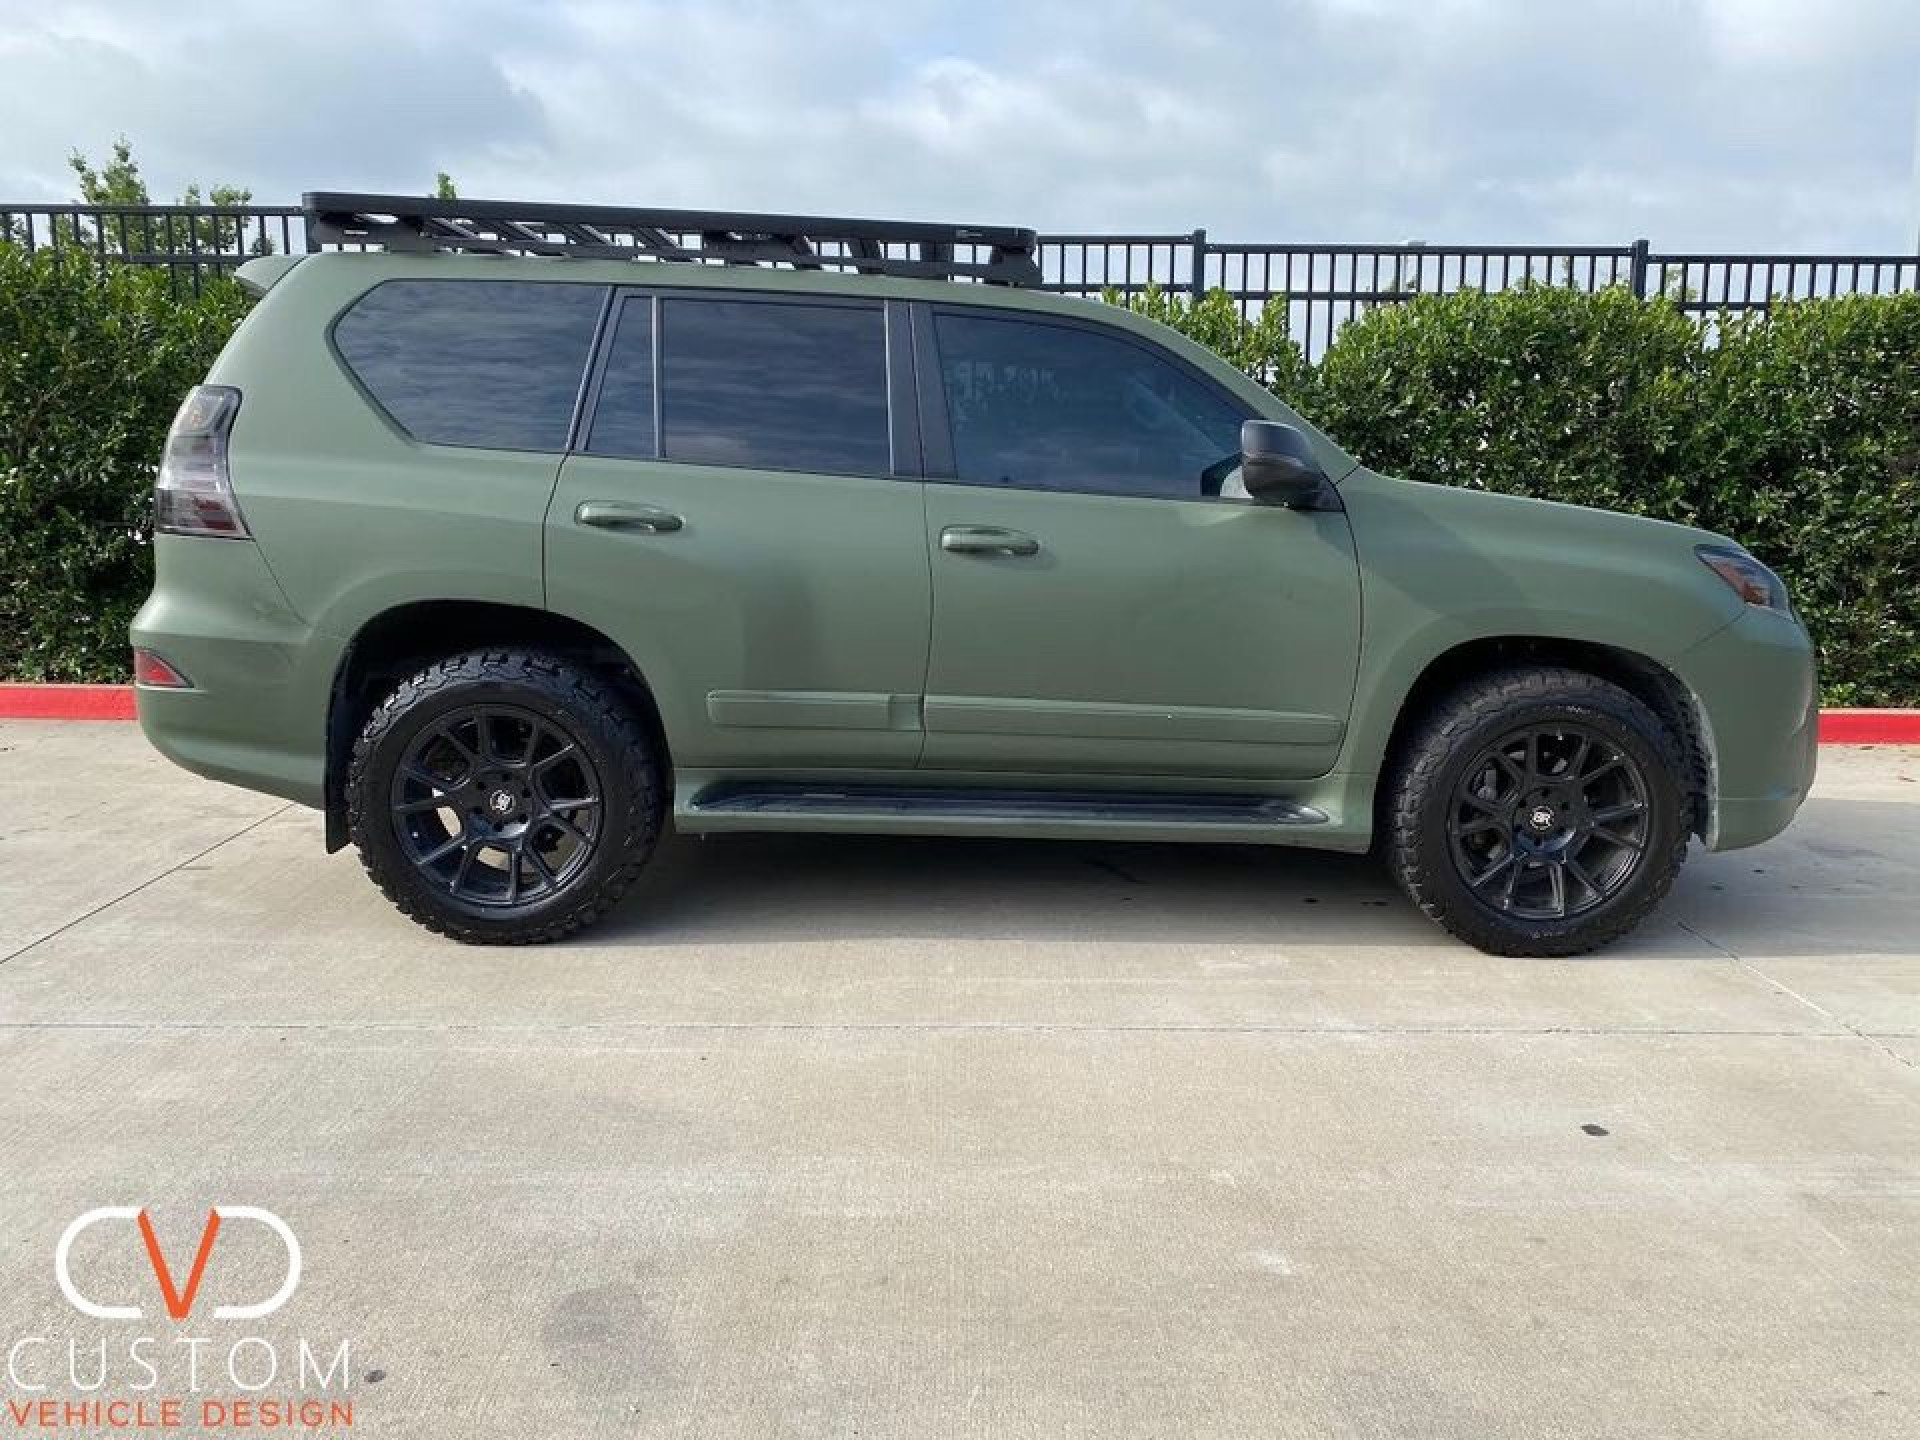 2020 Lexus GX460 w/ Black Rhino Mala wheels (full wrap, blackout, roof rack)